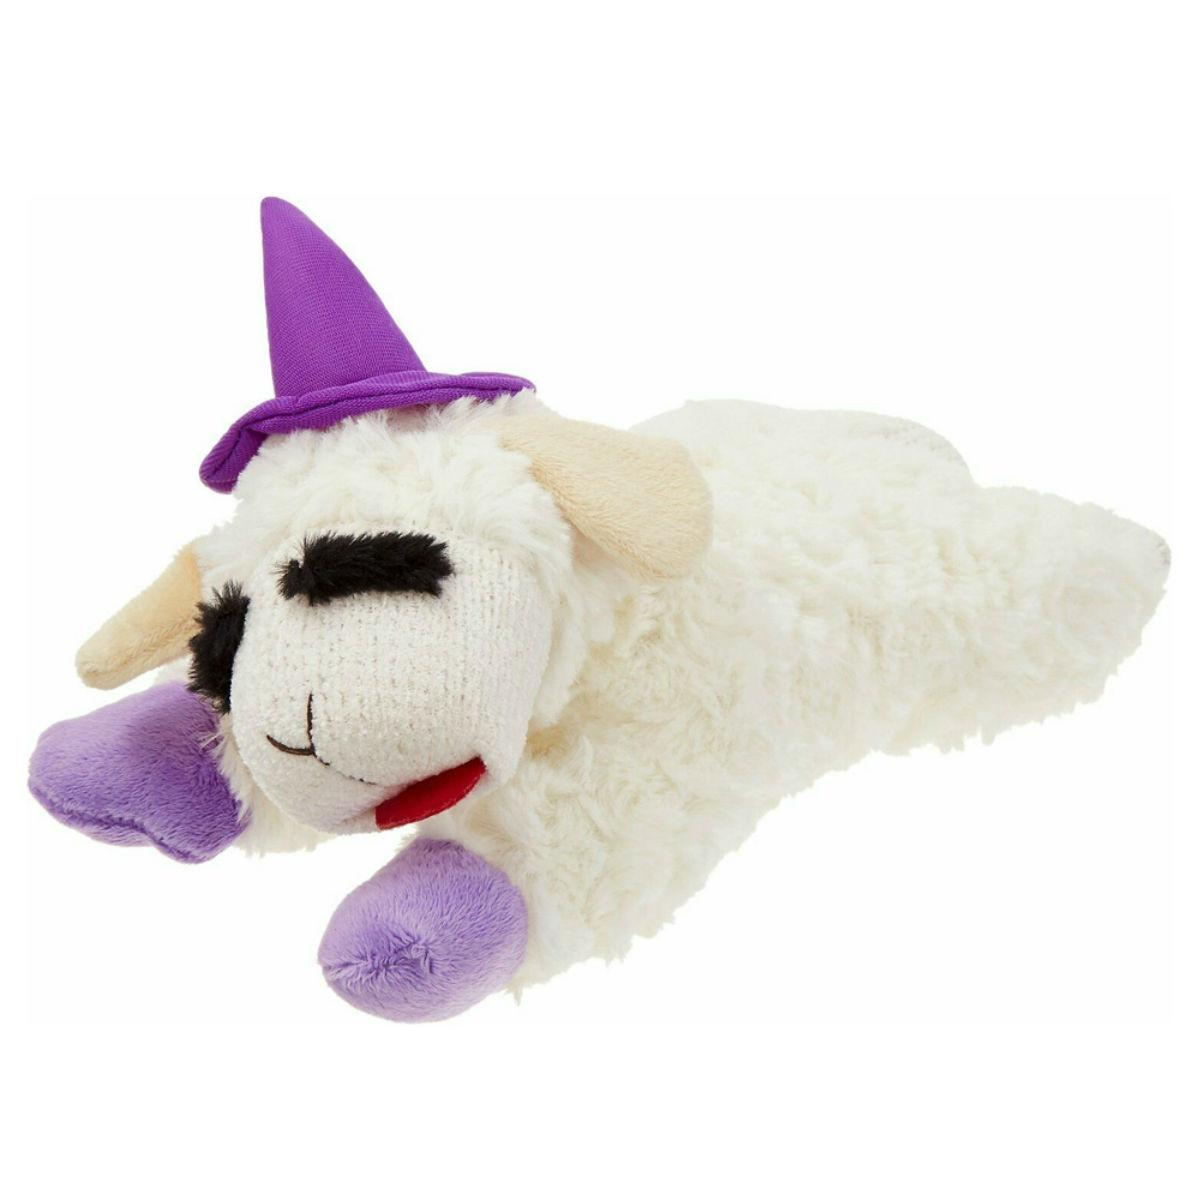 Multipets Halloween Lamb Chop Dog Toy - Purple Witches Hat